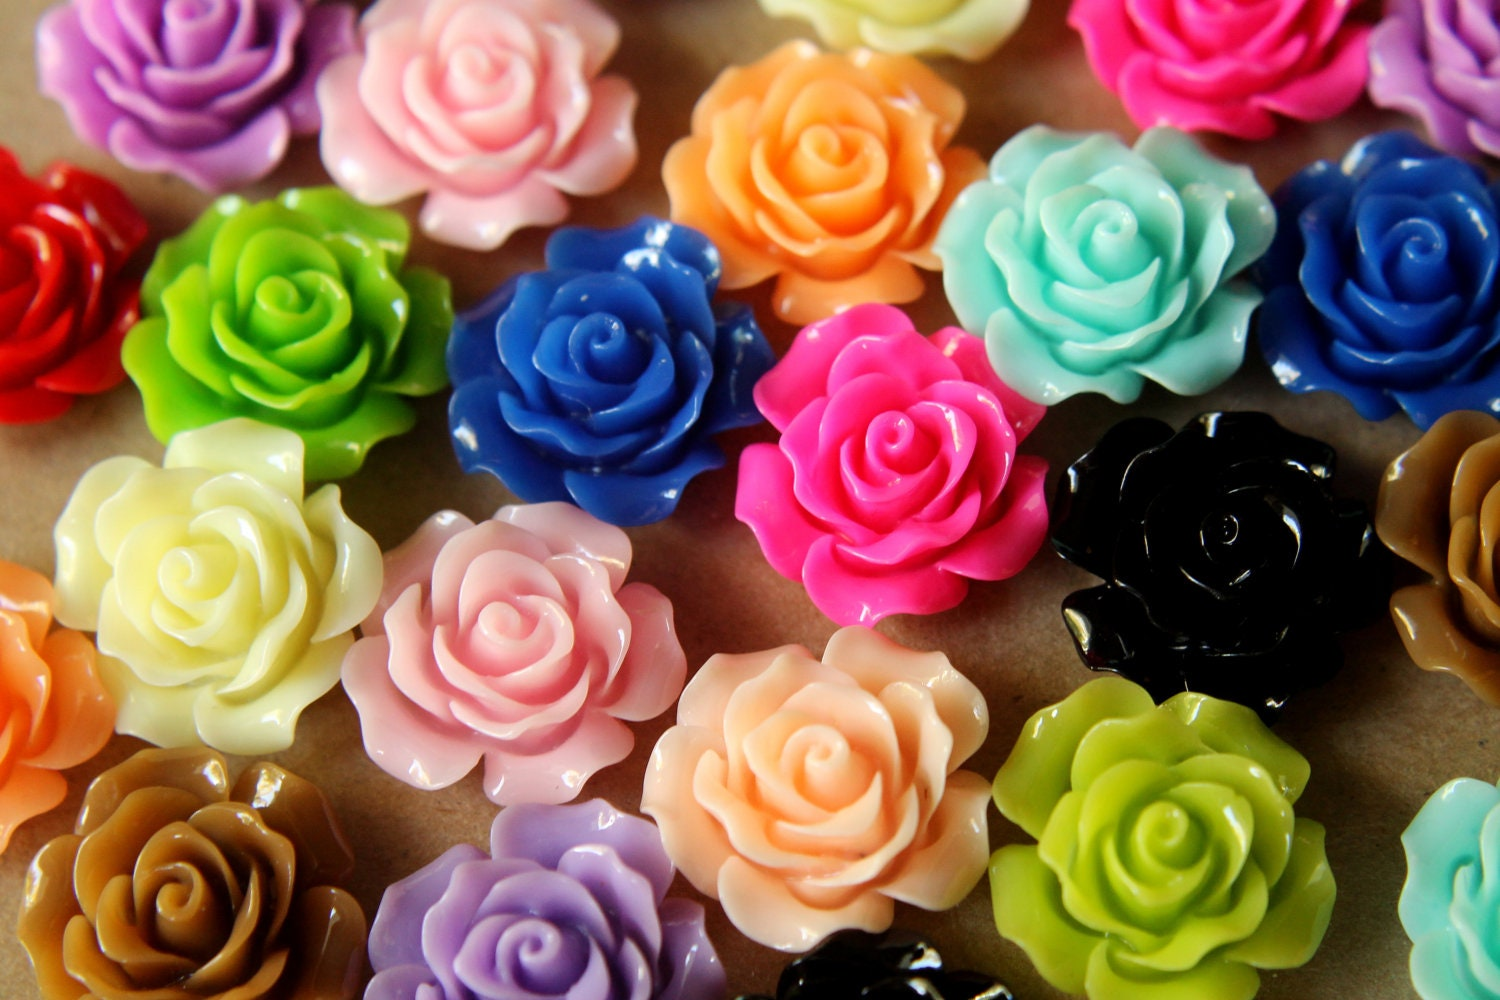 30 pc multi colored crisp petal rose cabochons 20mm res 269 for Multi colored rose petals